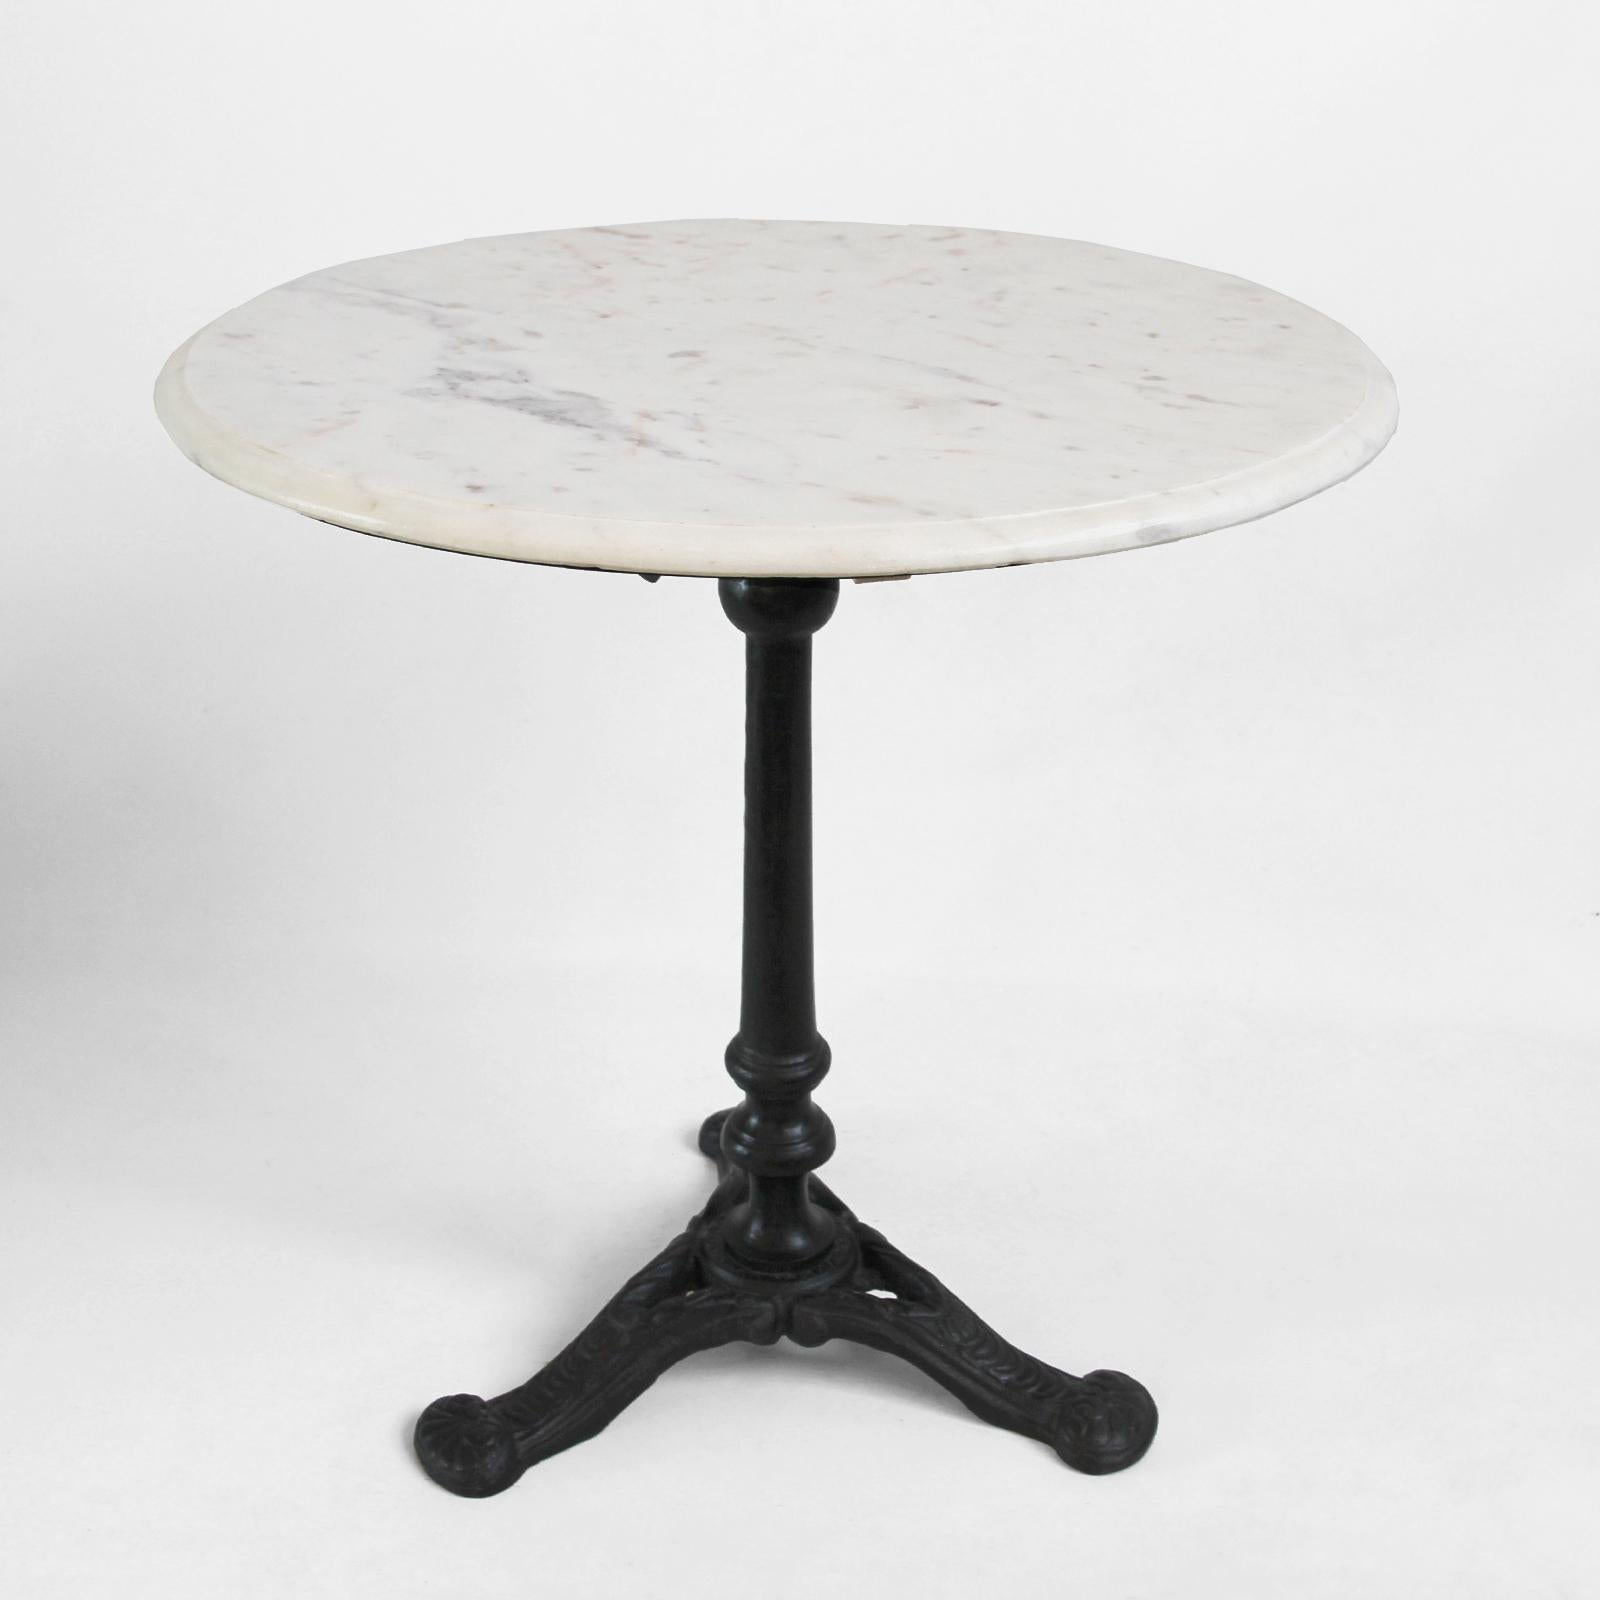 Polished White Marble Side Able With Sturdy Black Cast Iron Base. Great  Bistro Style Piece